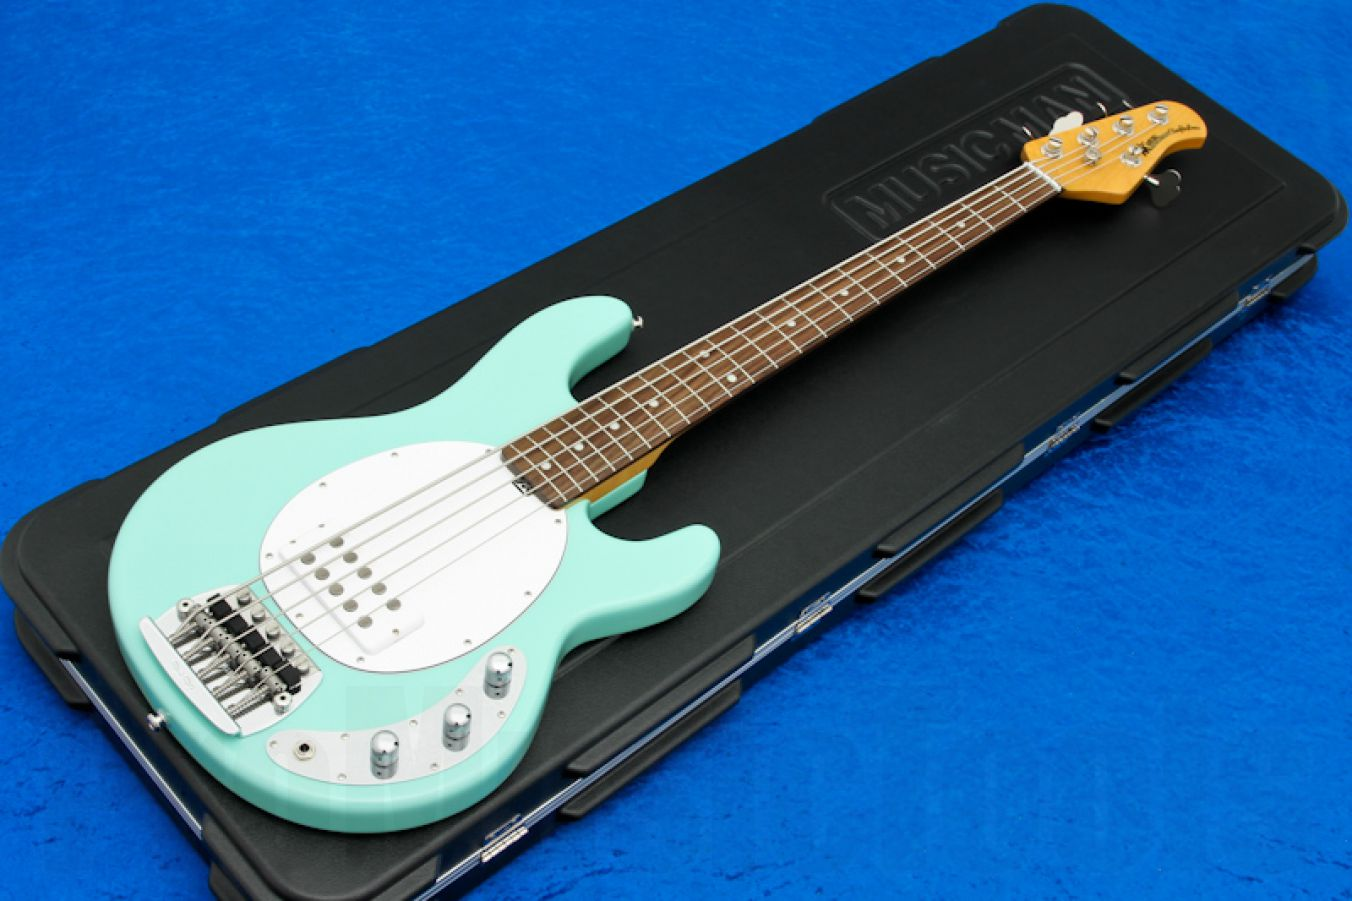 Music Man USA Classic Stingray 5 MG - Mint Green RW Birdseye